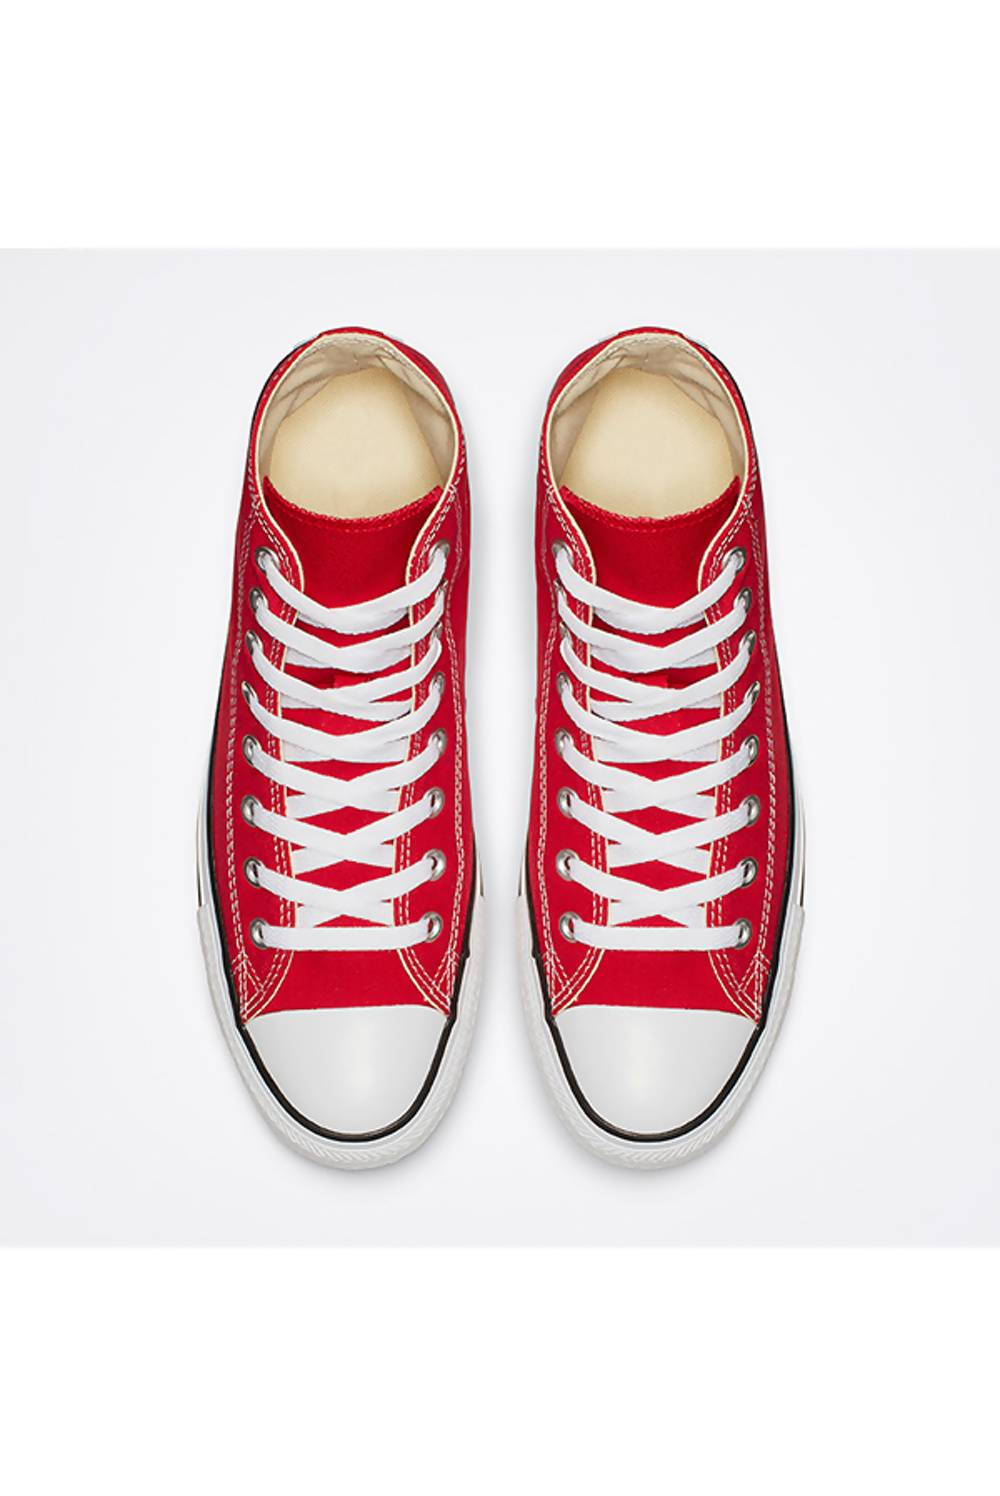 Red High Top Canvas Trainers J5 Fashion